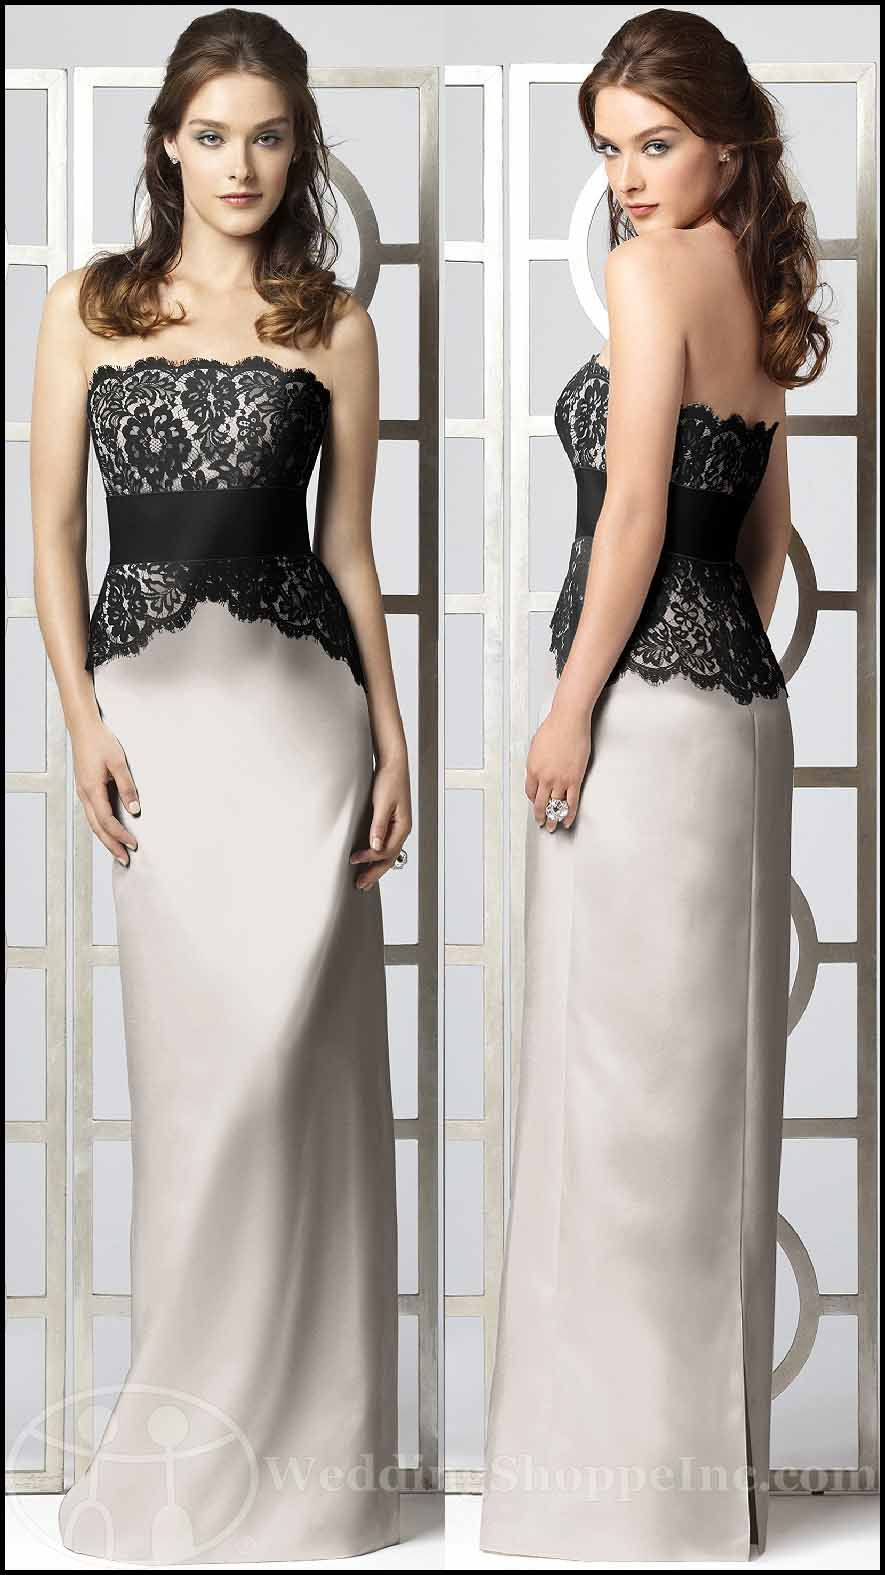 My Wedding Chat » Blog Archive Black and White Bridesmaid Dresses ...